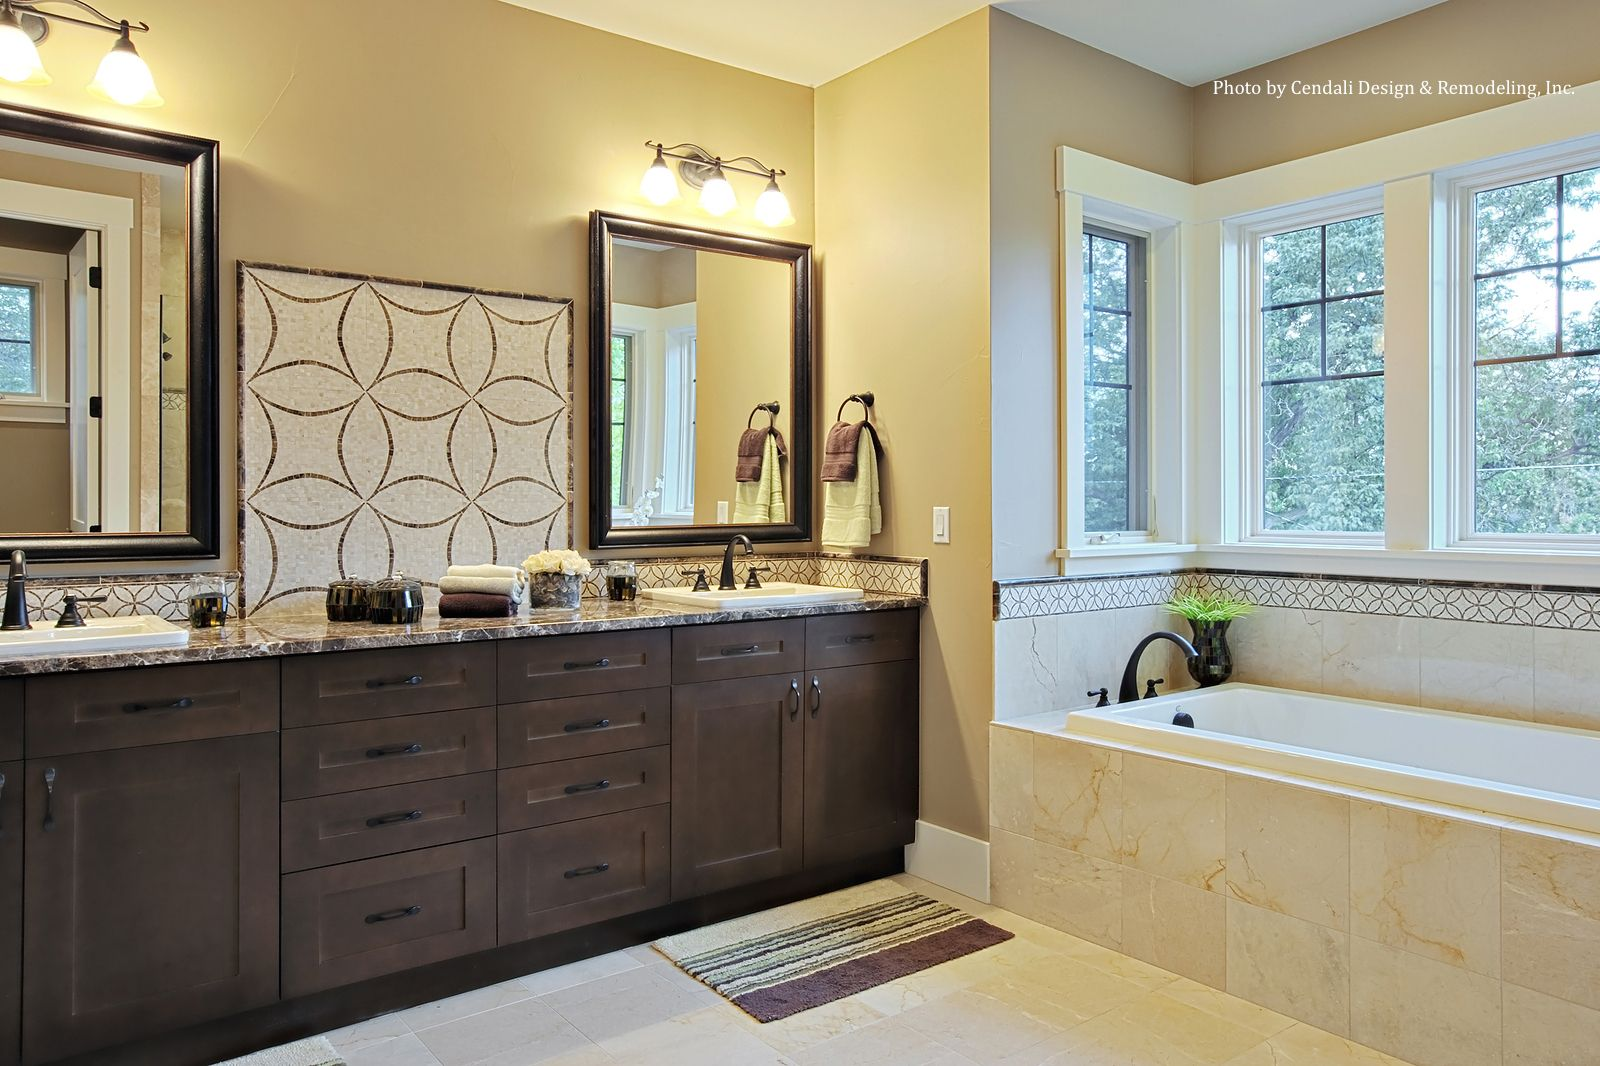 Oil Rubbed Bronze Plumbing Fixtures And Large Windows Surrounding A - Cost to add window in bathroom